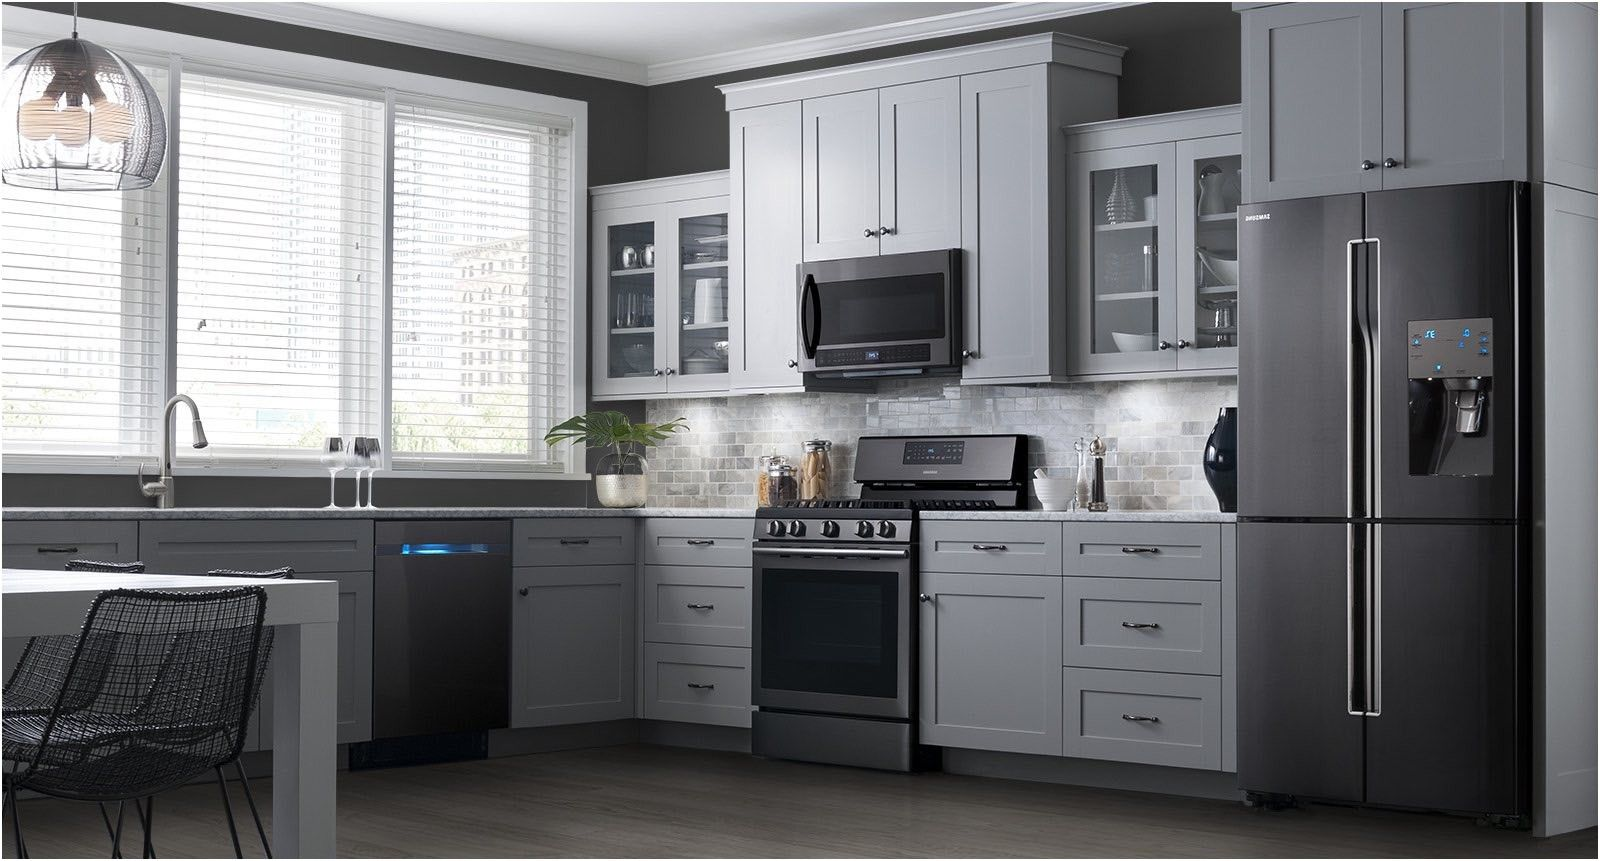 Kitchenaid Vs Samsung Black Stainless Steel Appliances Reviews From Office K Black Appliances Kitchen Slate Appliances Kitchen Black Stainless Steel Appliances